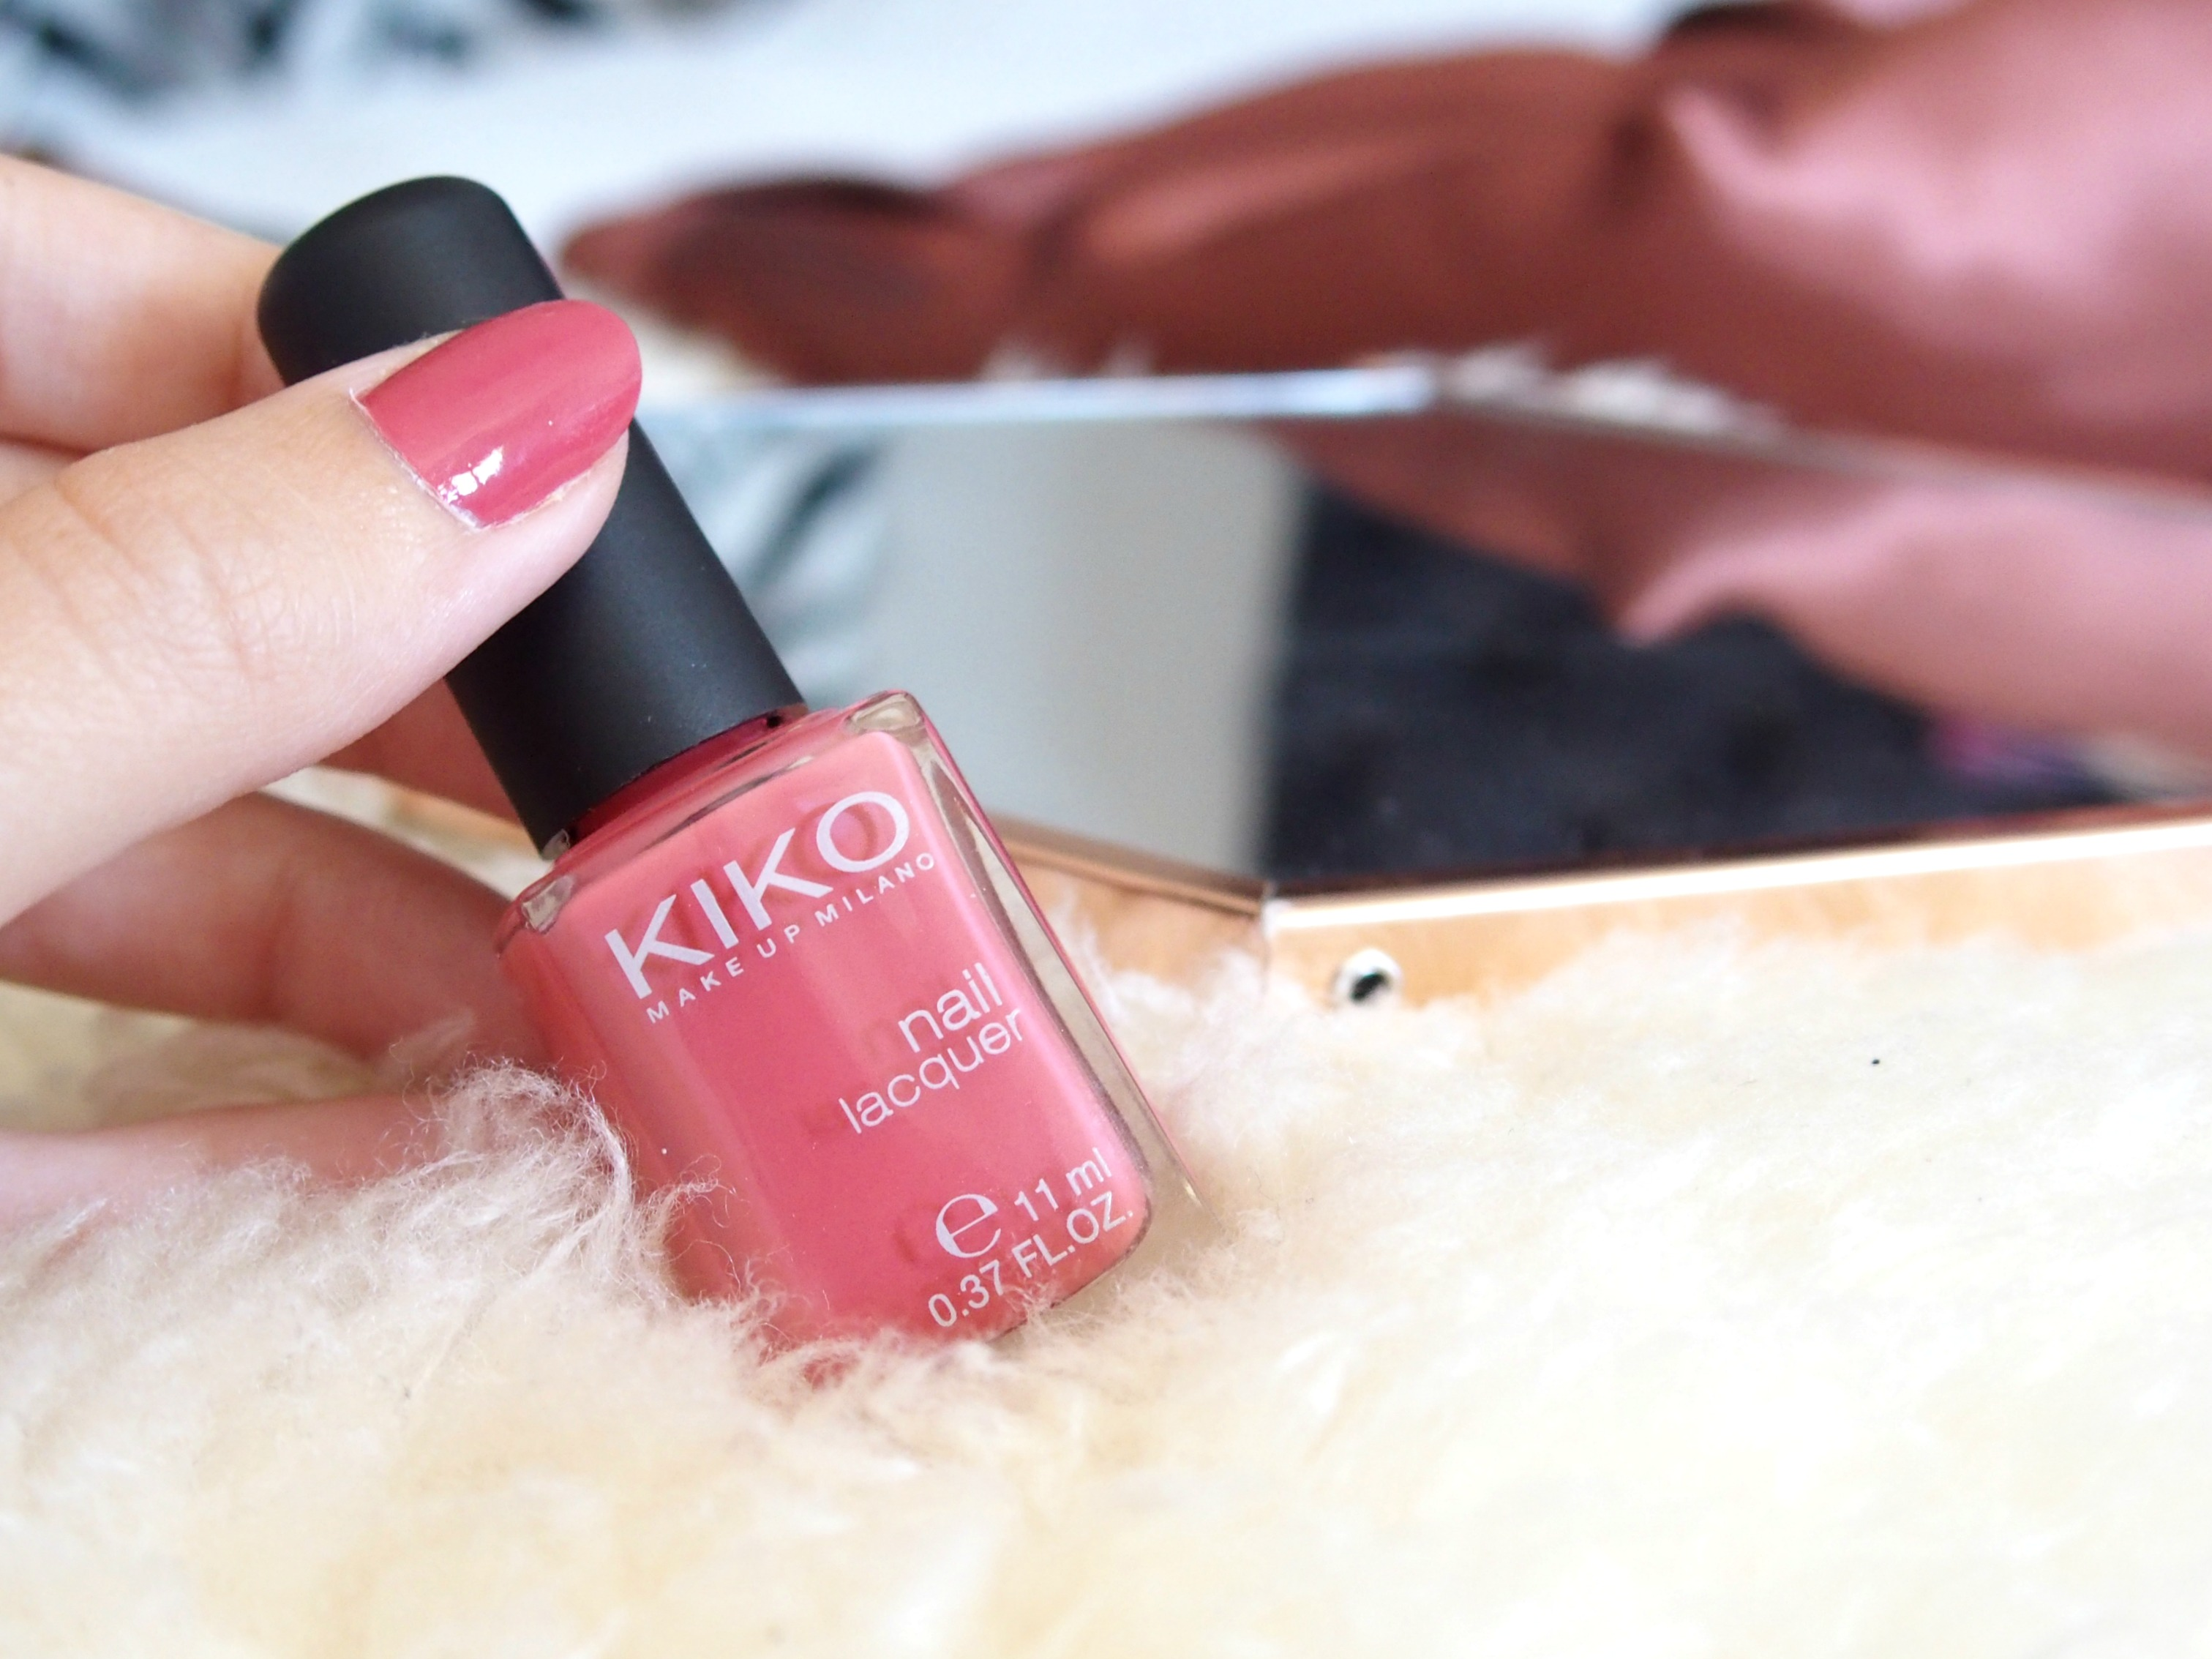 Rose Gold vernis kiko